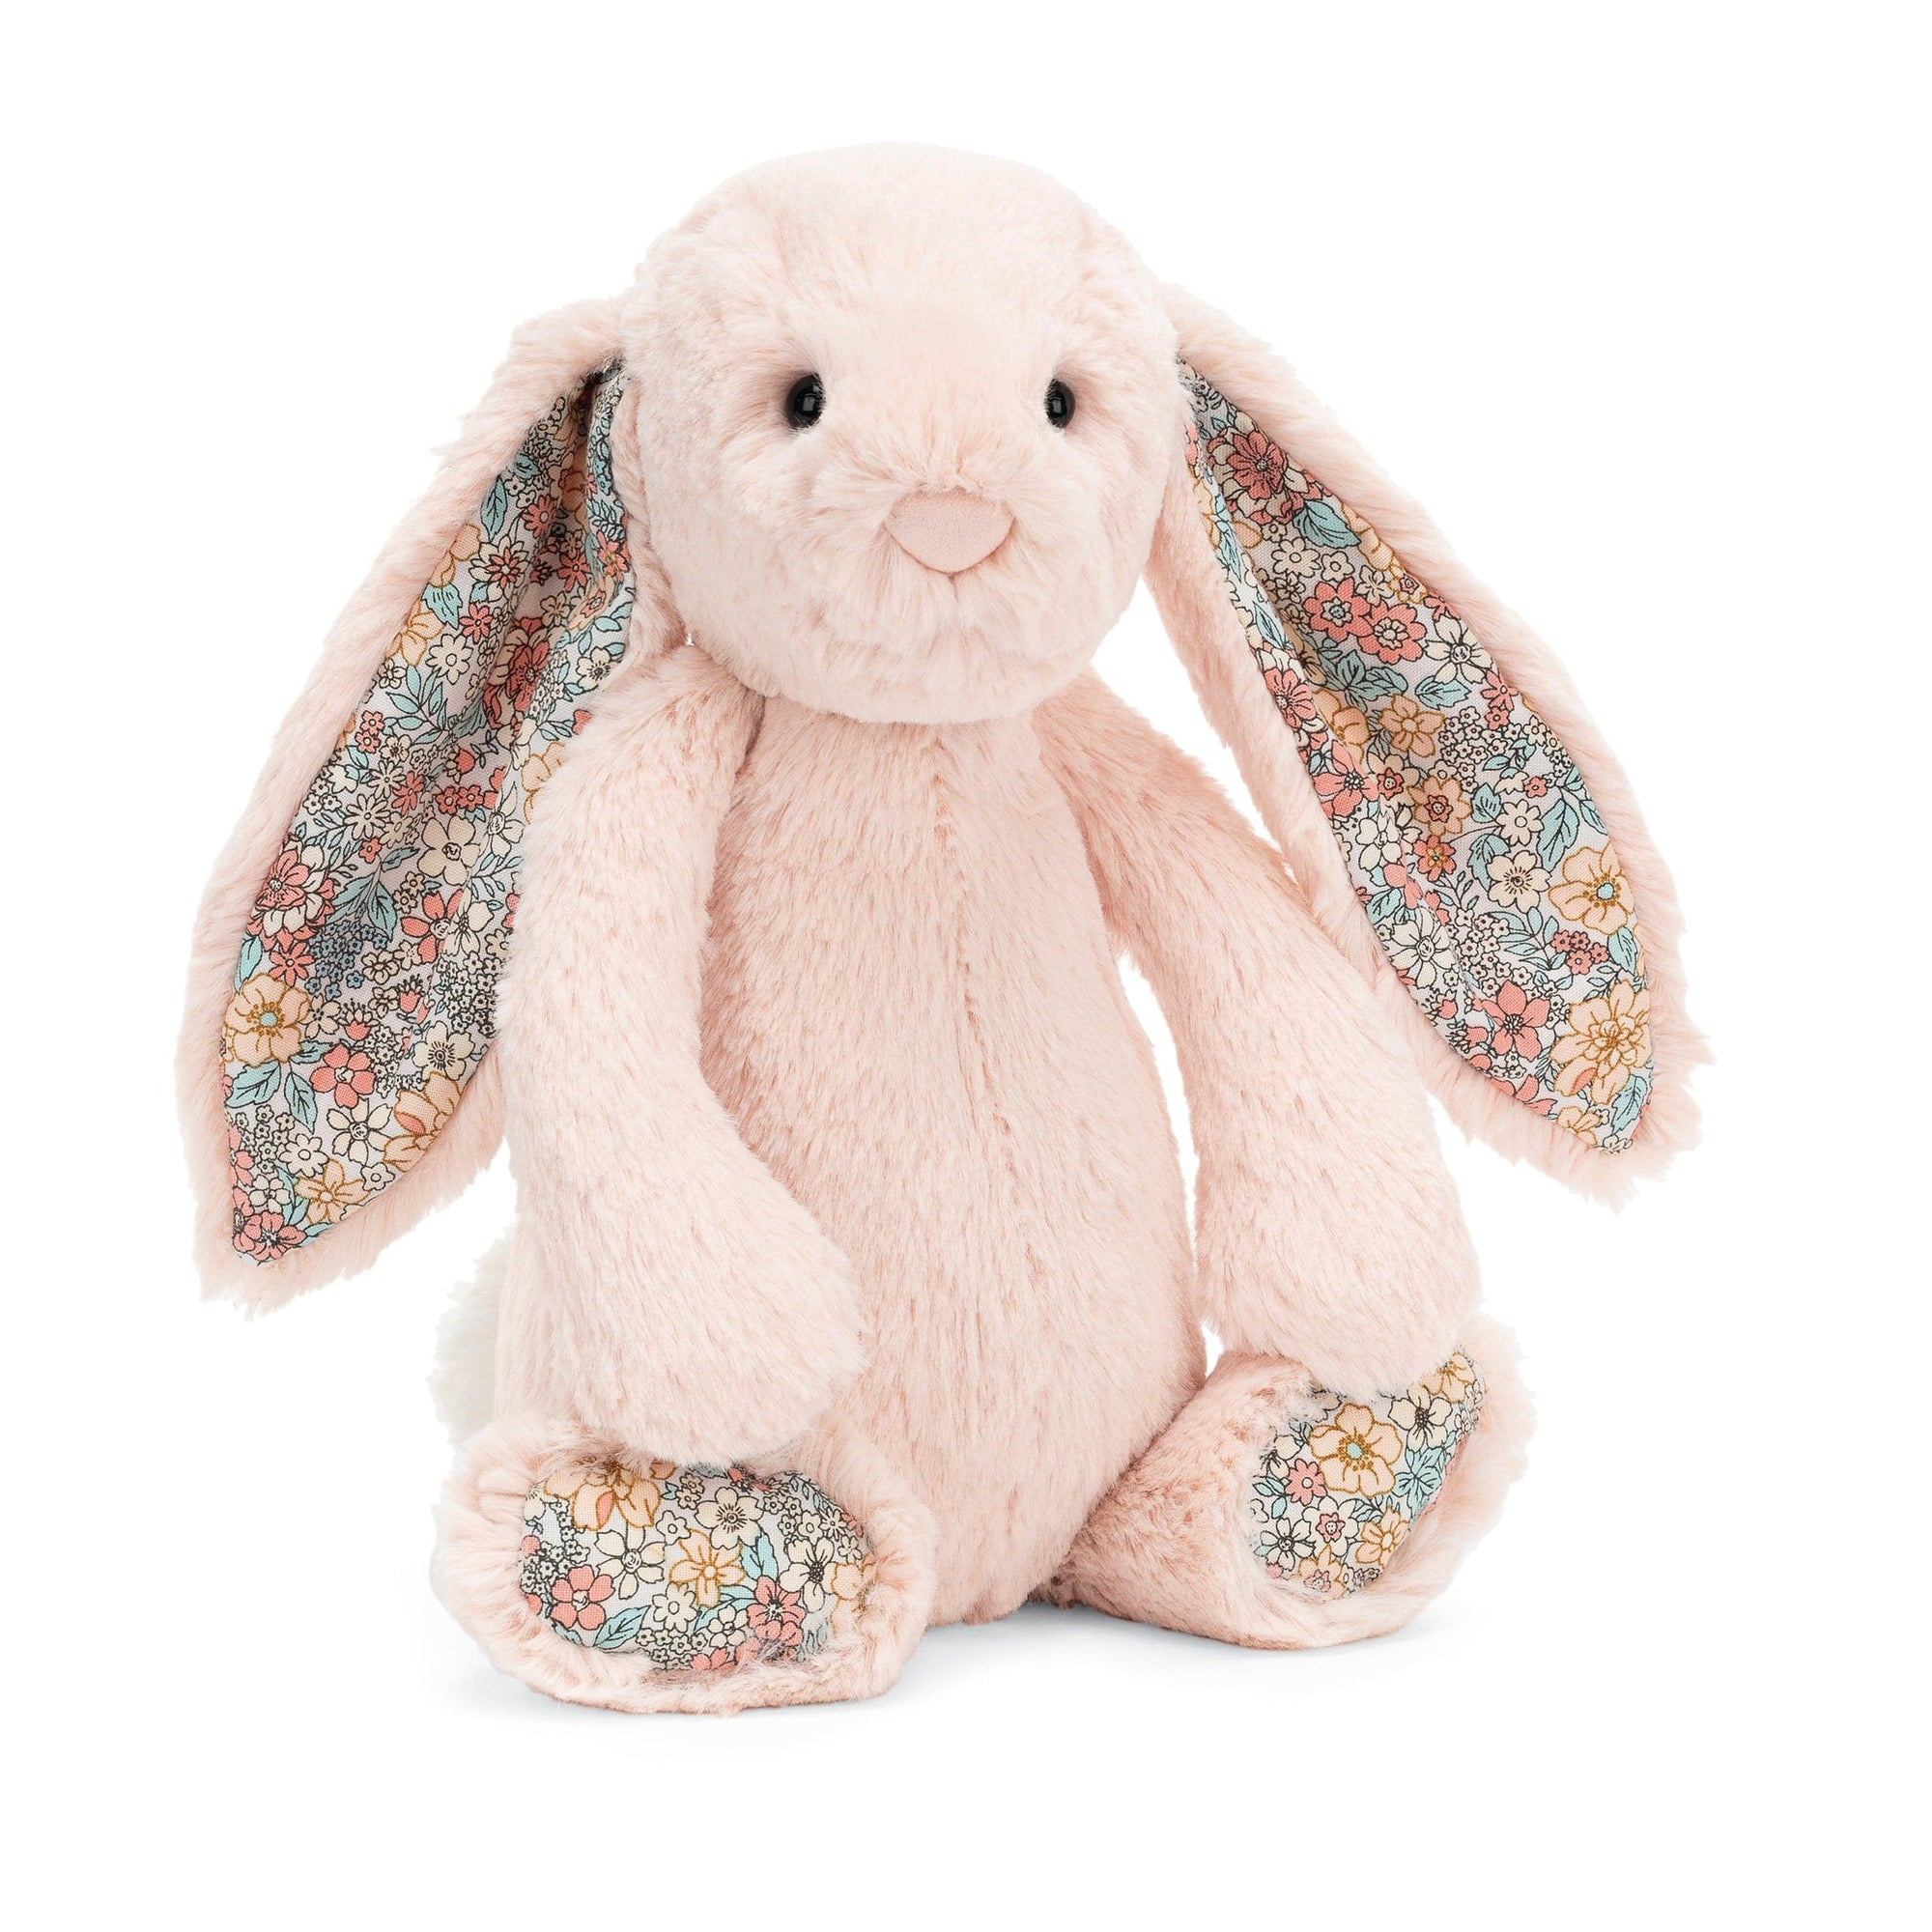 Blossom Bunny Blush / Medium 12""